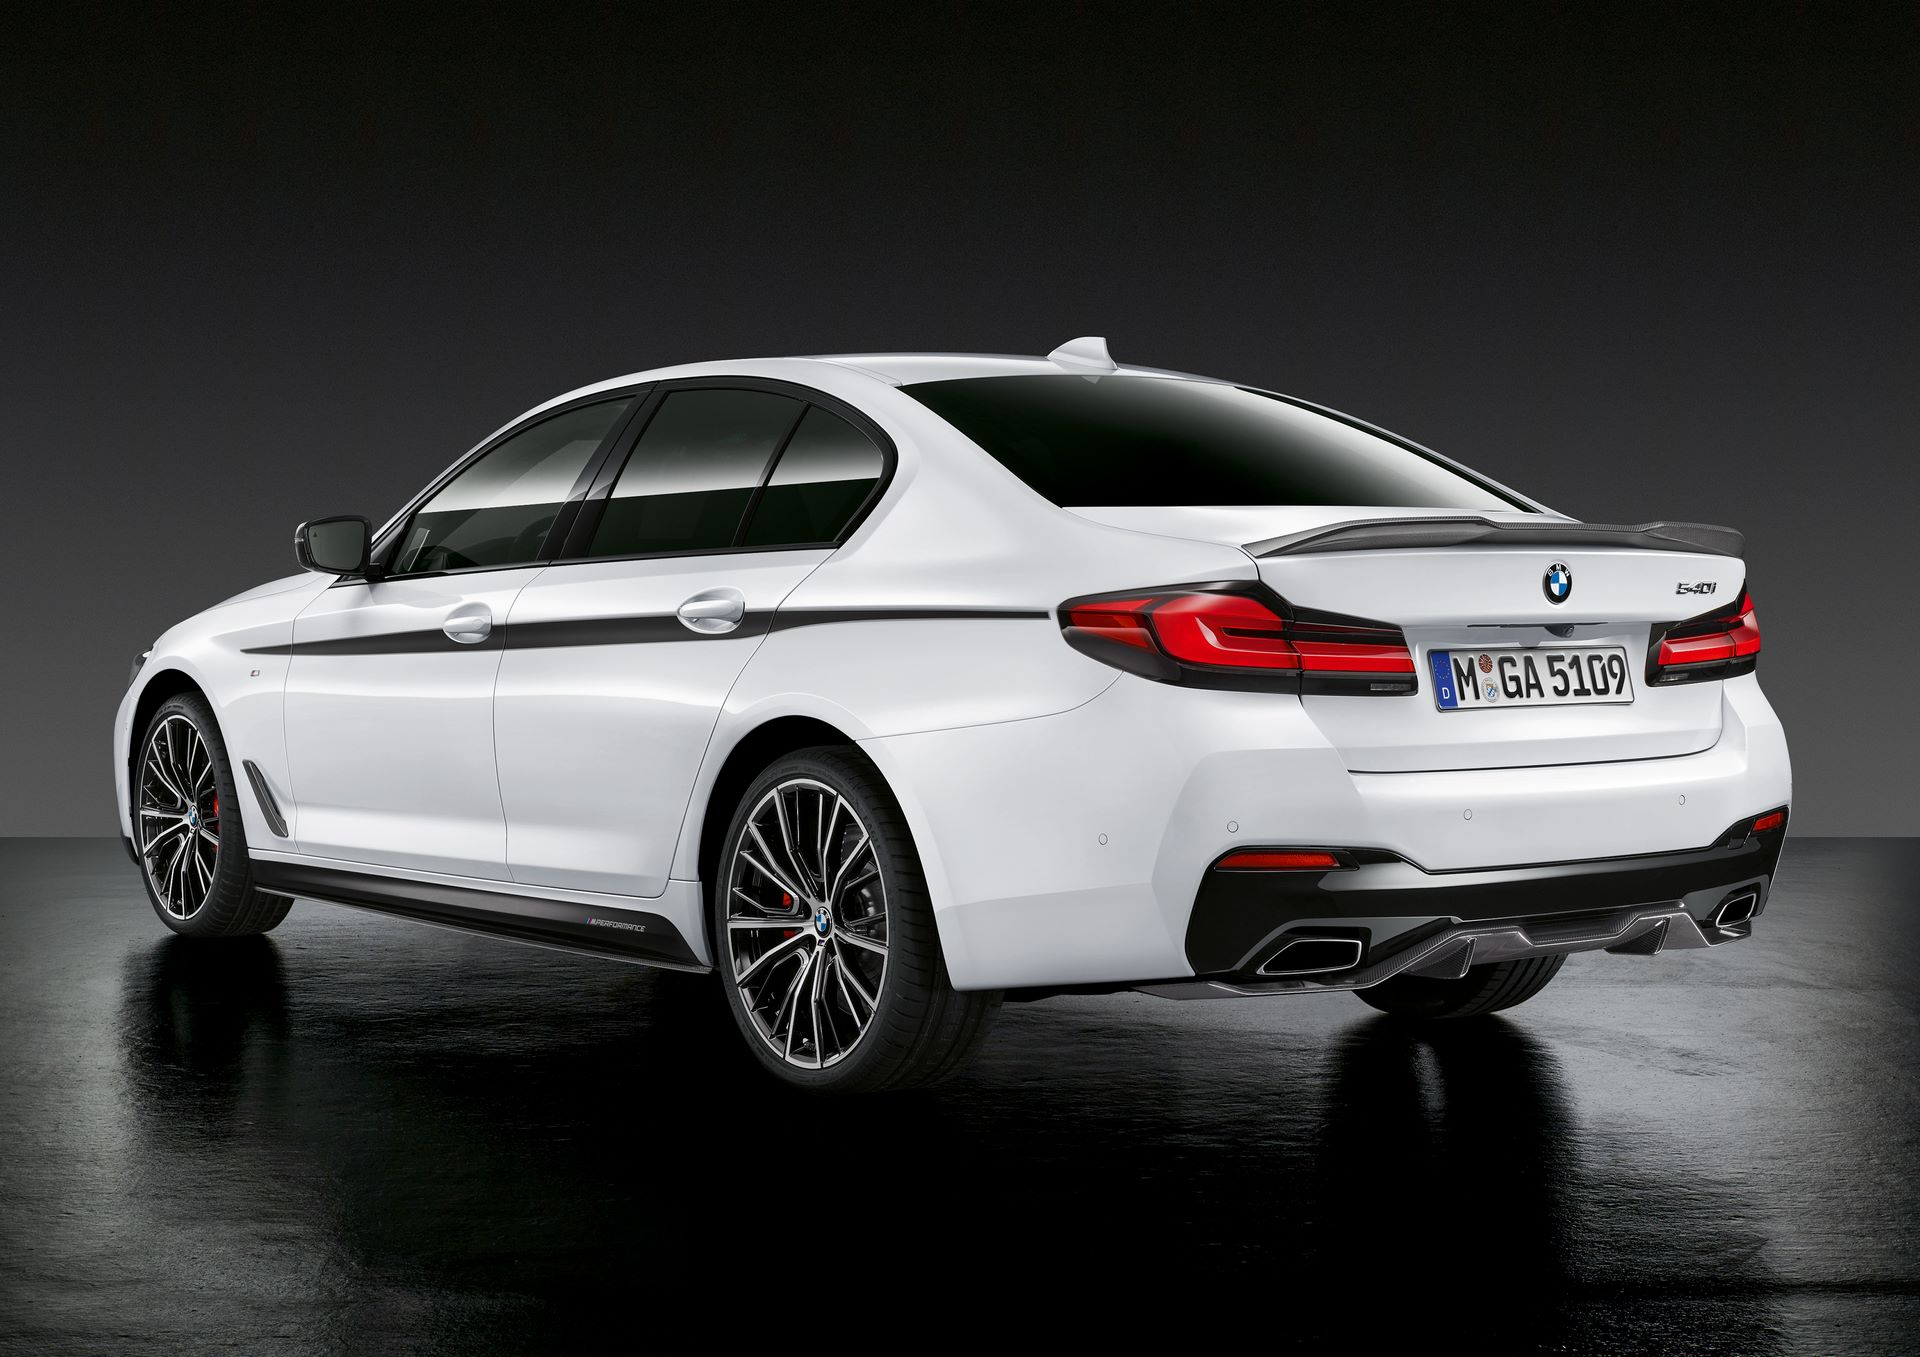 BMW-M-Performance-Parts-for-5-Series-M5-and-M5-Competition-3